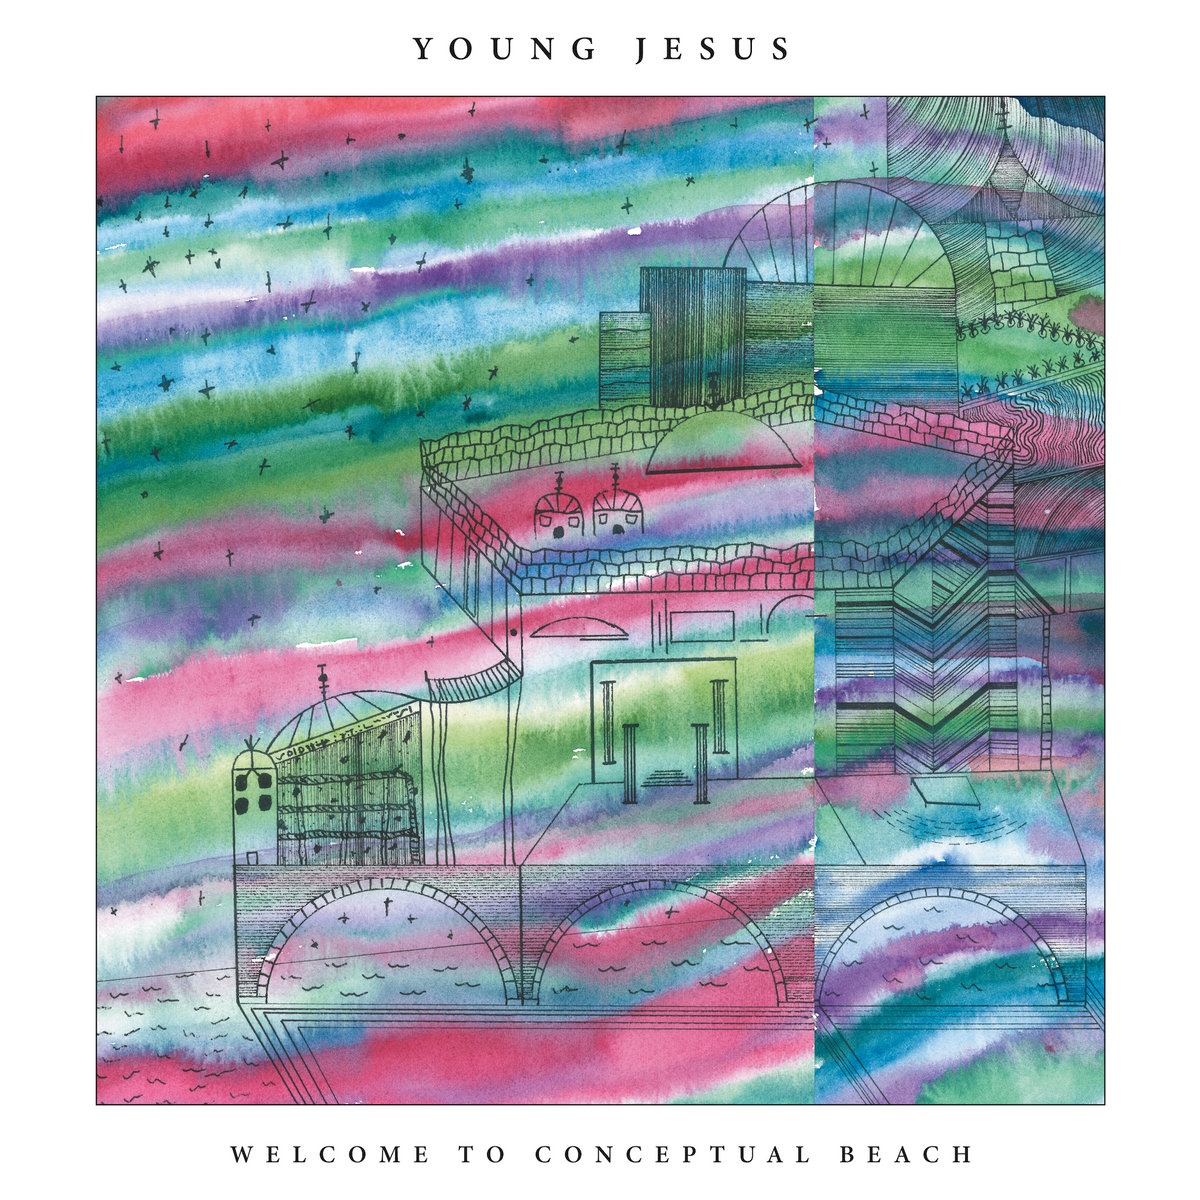 young jesus welcome to conceptual beach альбом рецензия 2020